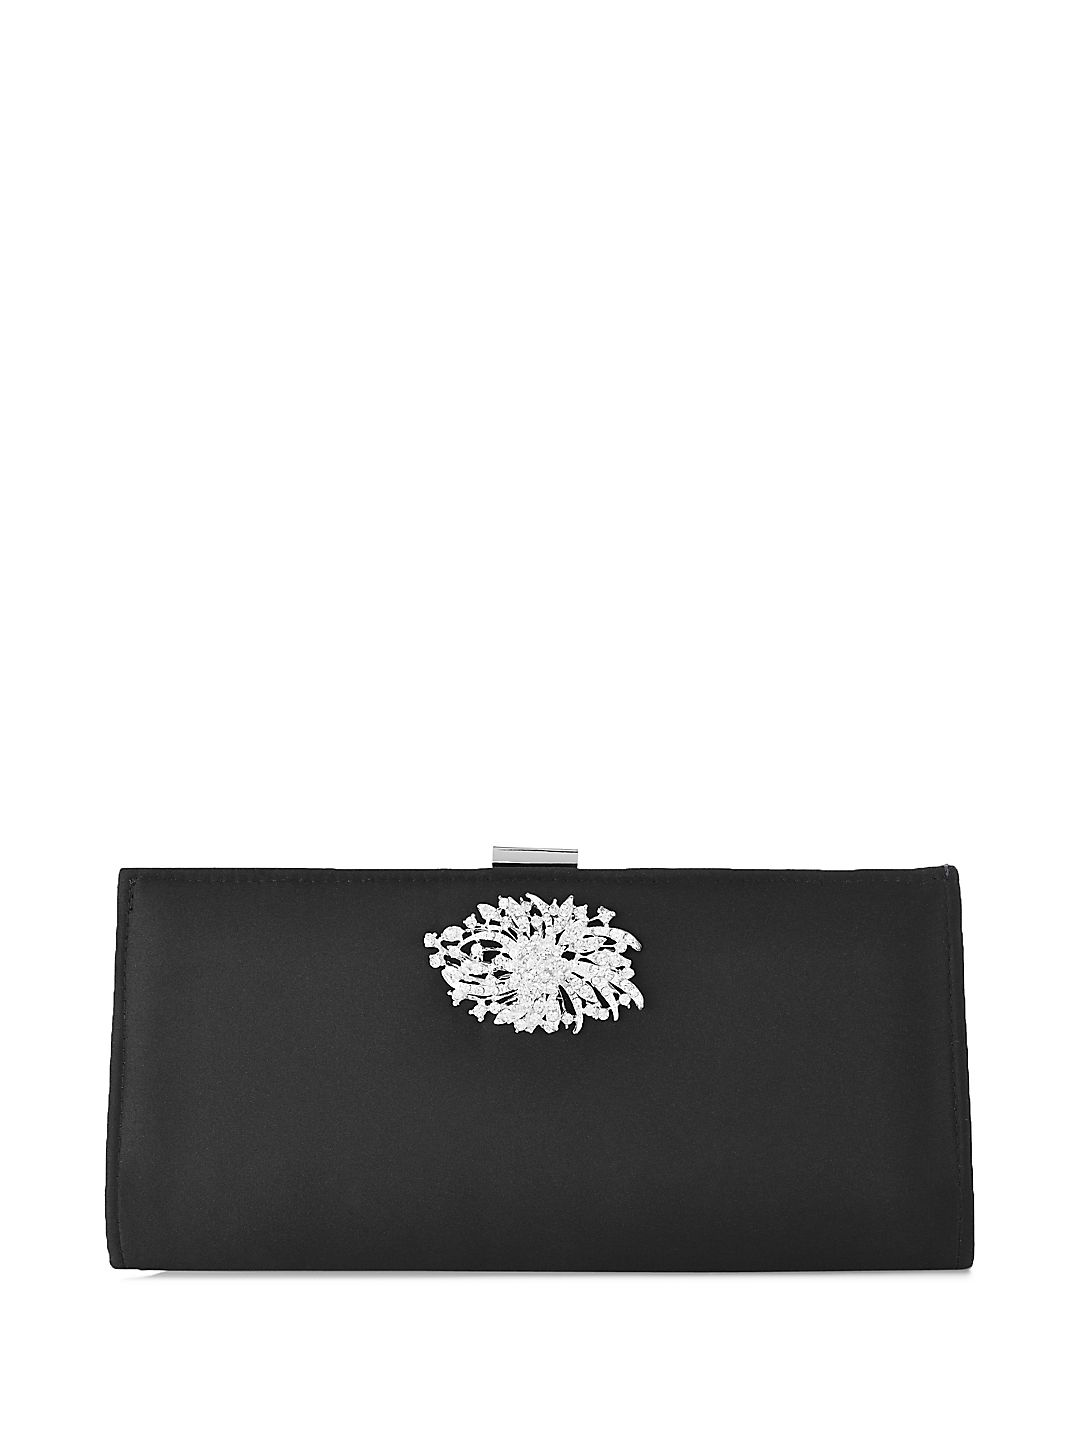 Stacee Covered Frame Clutch